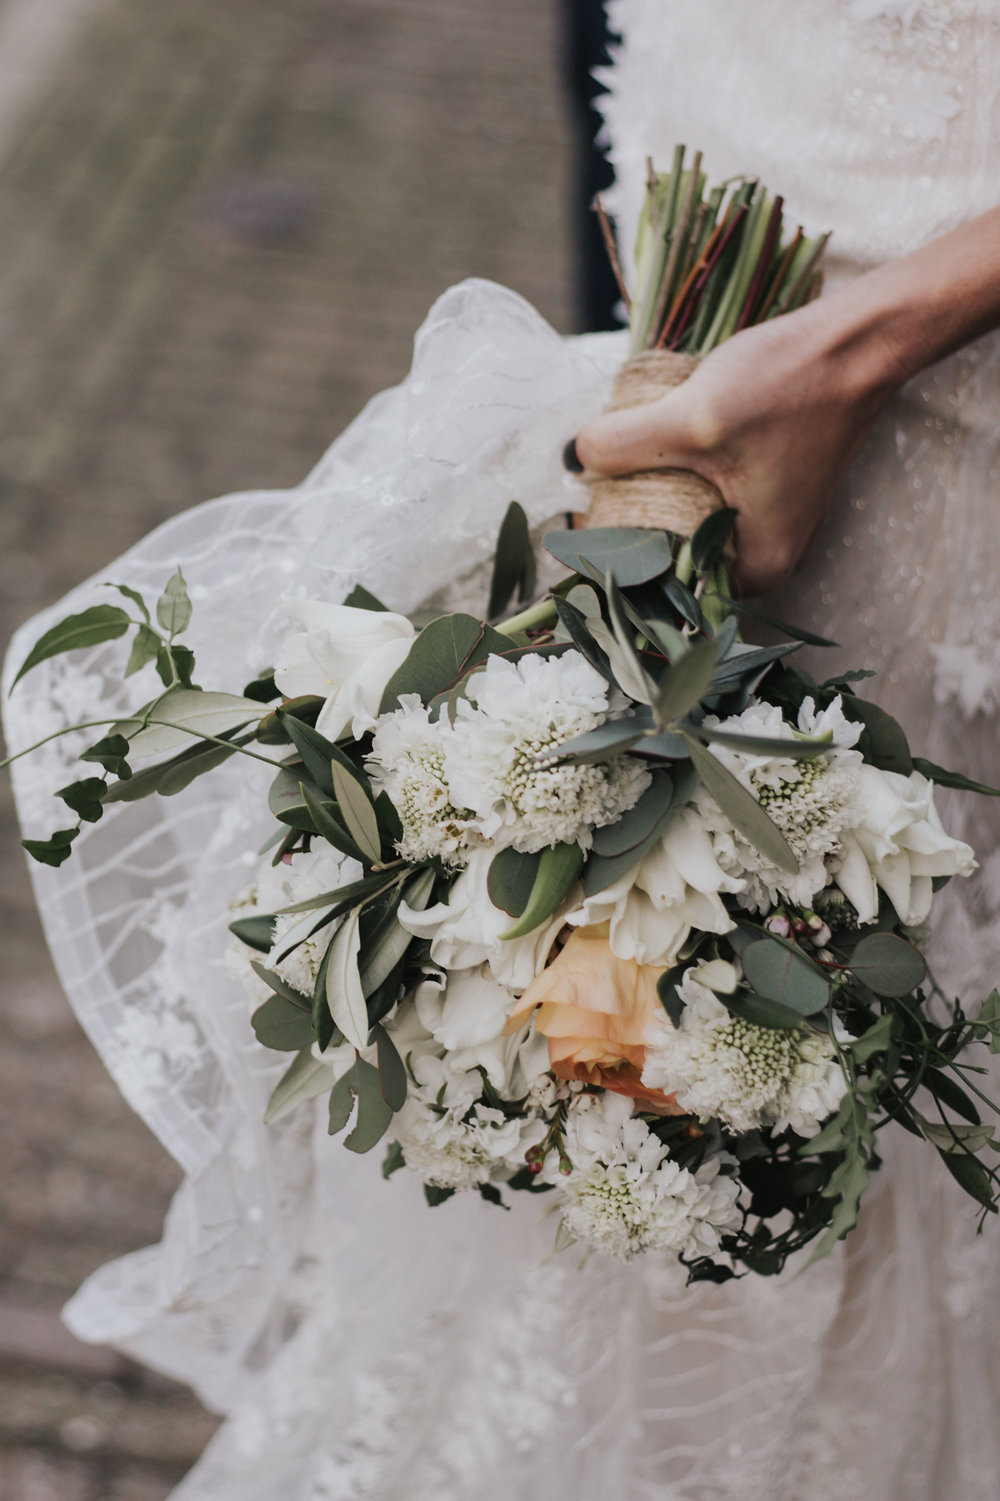 A.P Bloem florist bloemist Amsterdam flowers sprookjesachtige bloemen wedding bruiloft trouwen marriage Kerkstraat Andaz Hotel wildflowers Alice in Wonderland botanical trouwtrends bruiloft trends wedding goals trouwinspiratie trouwen photoshoot fairytale